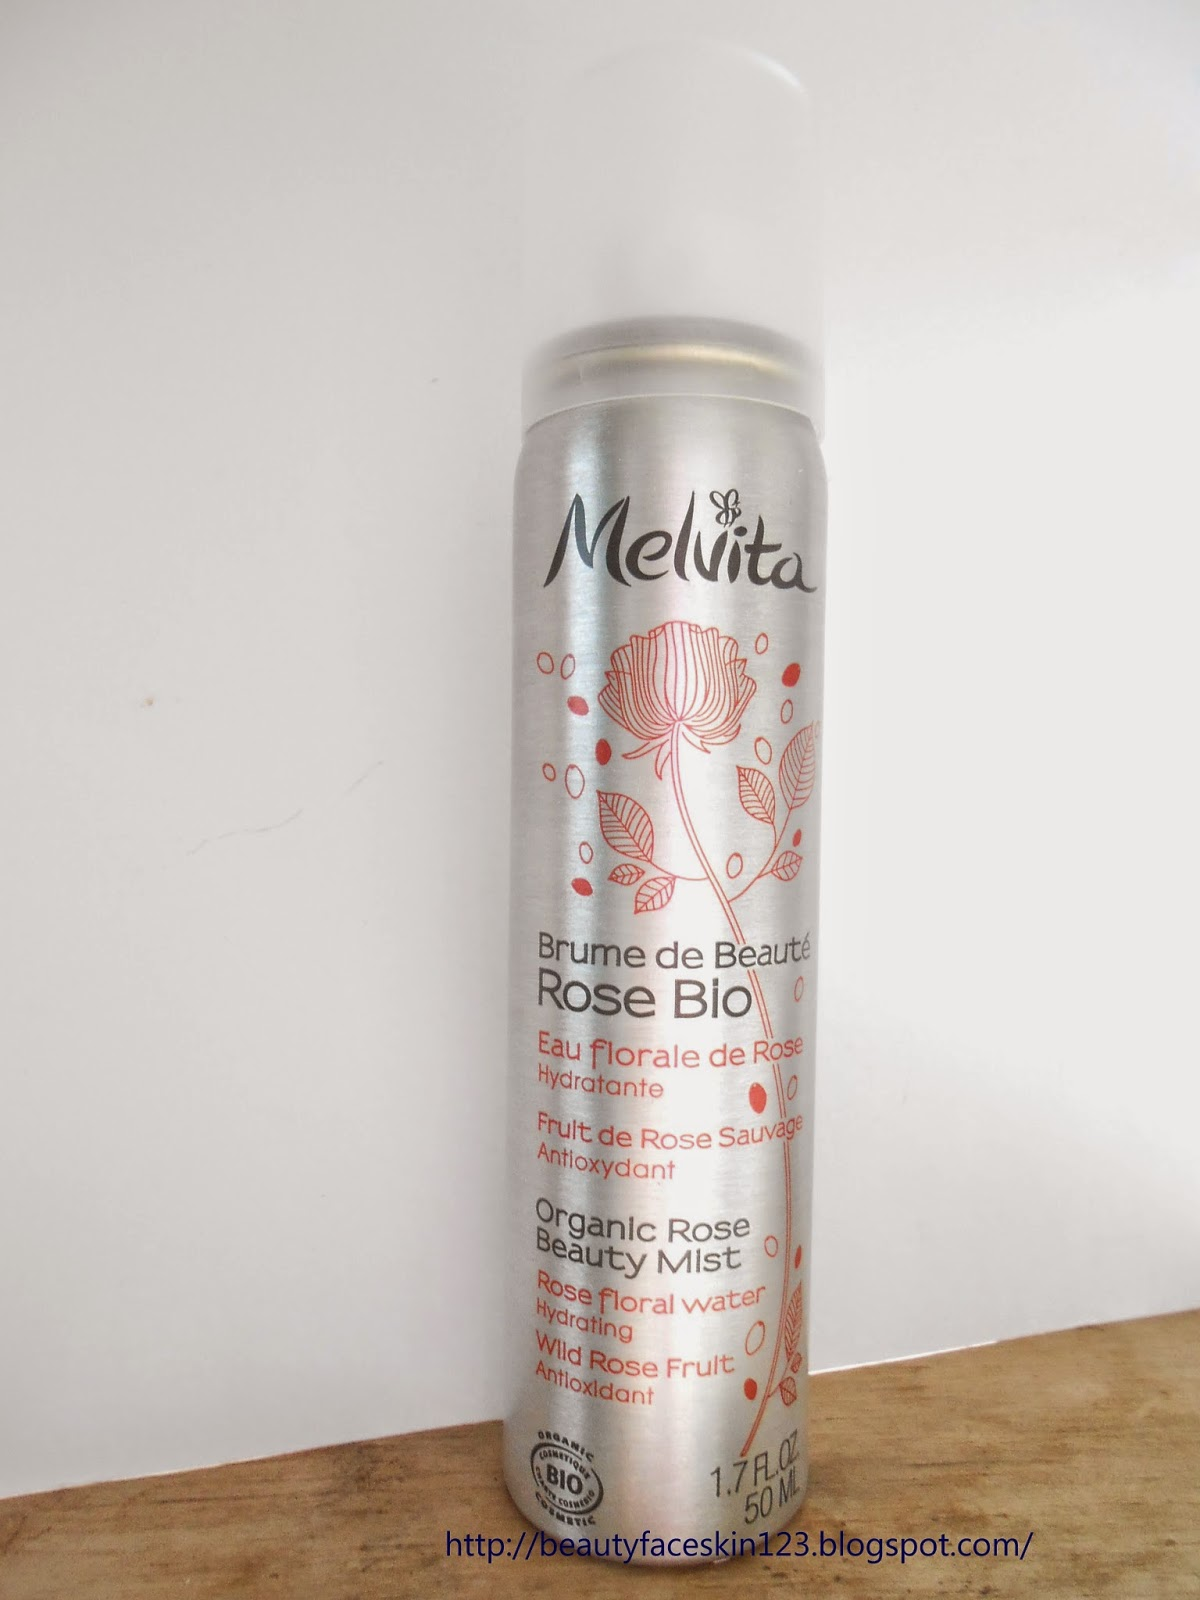 MELVITA ORGANIC ROSE BEAUTY MIST